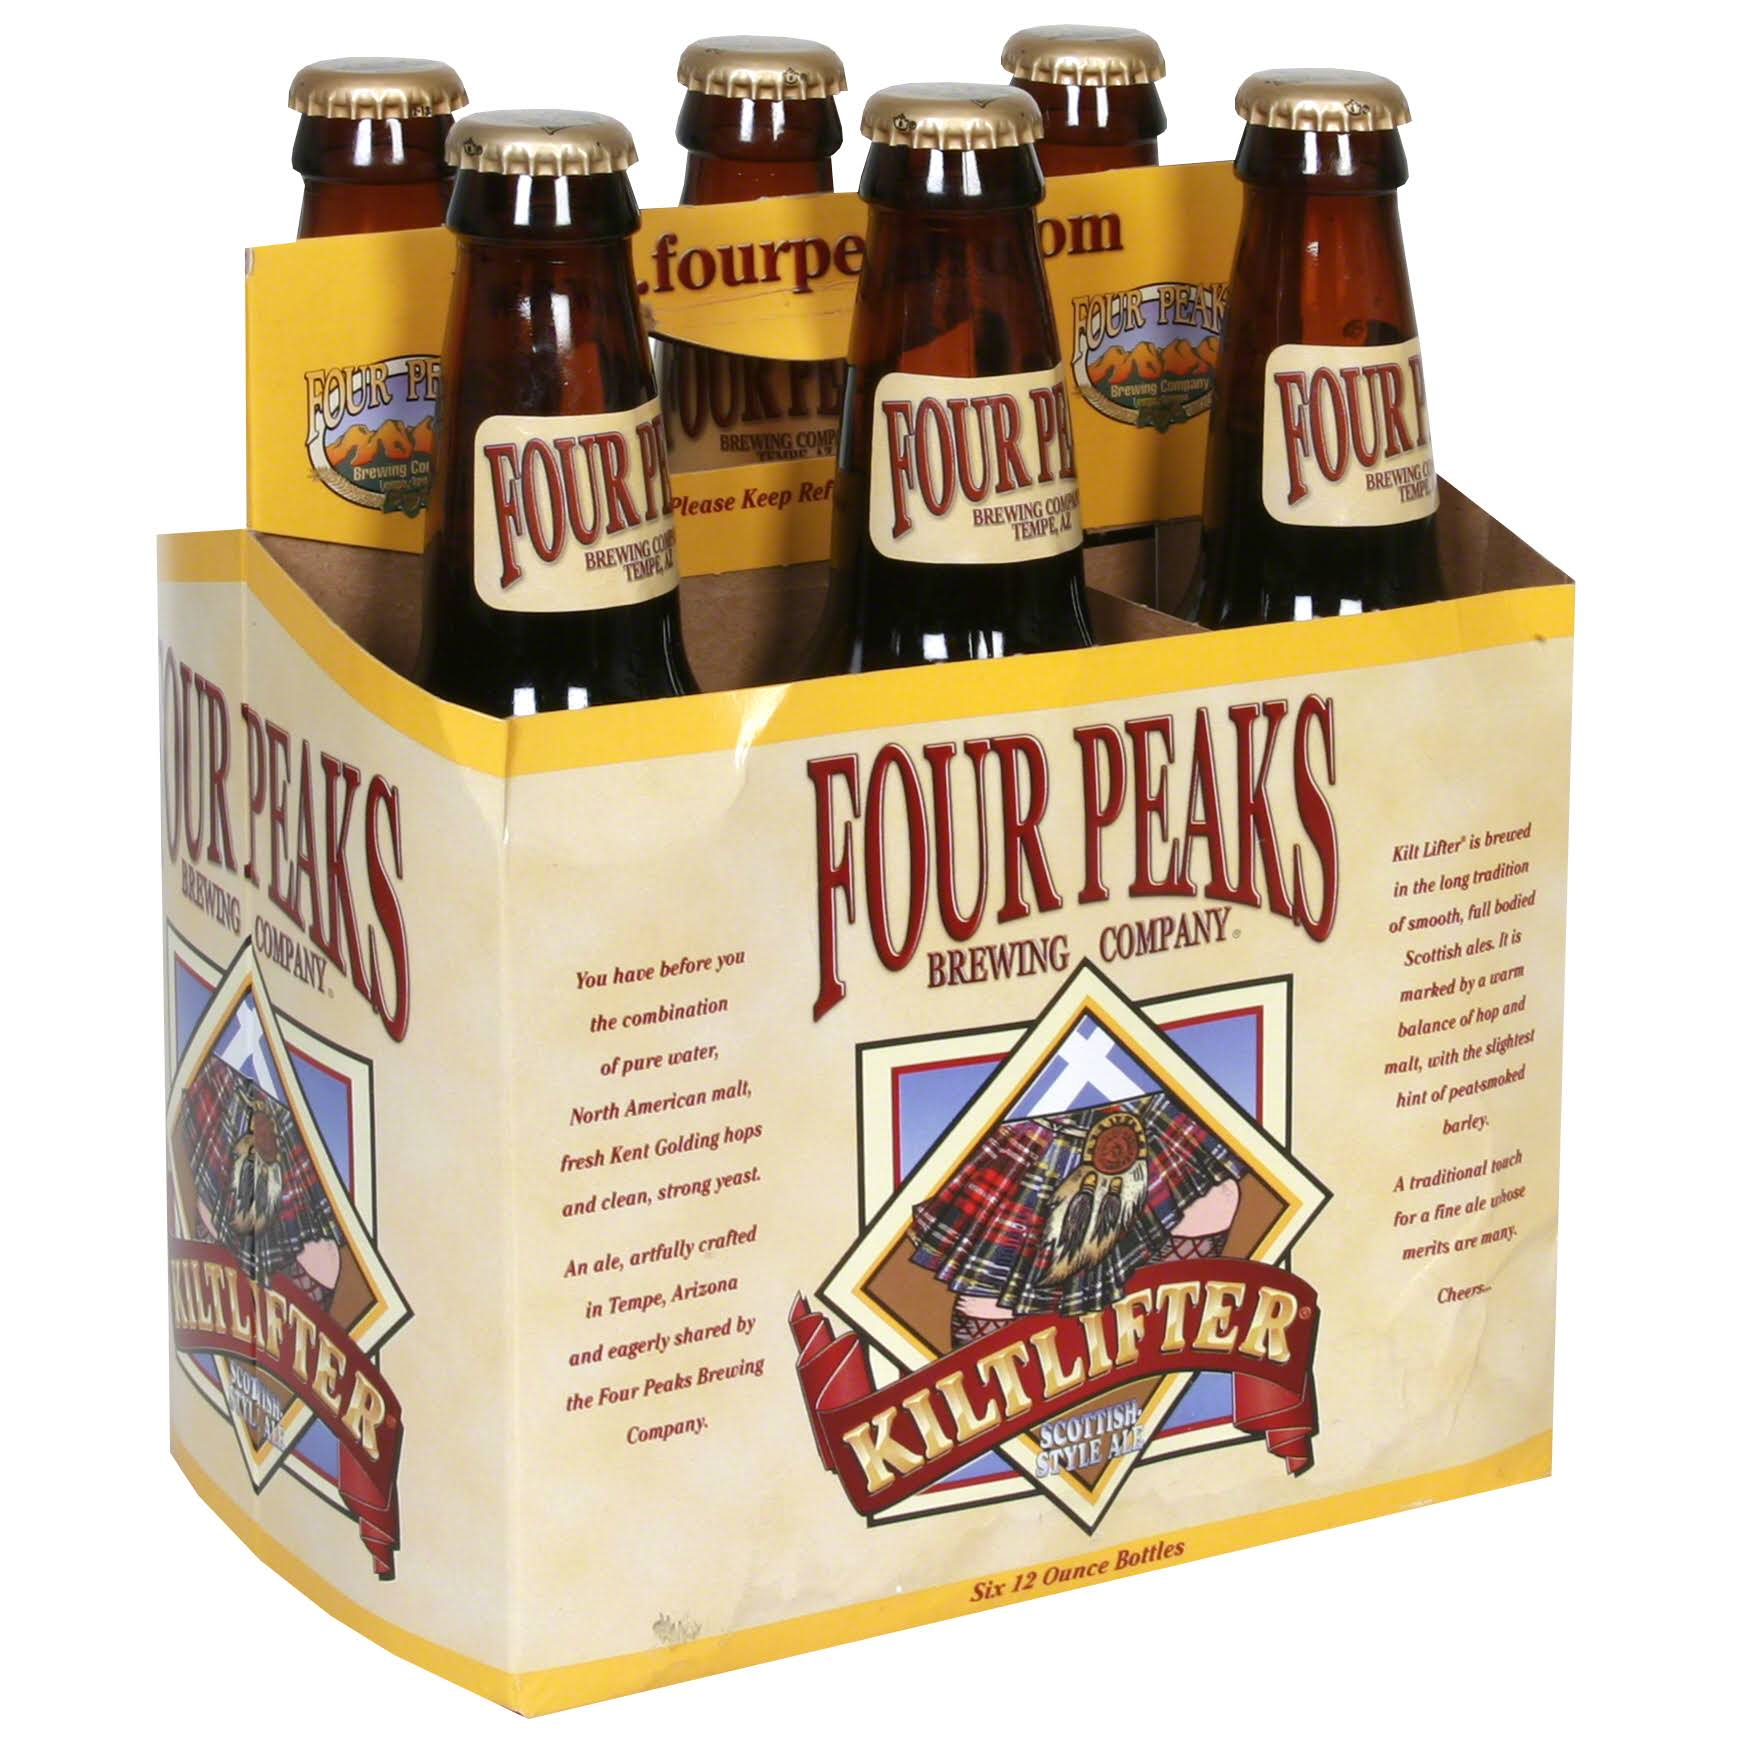 Four Peaks Kiltlifter Scottish Style Ale - 6 Pack